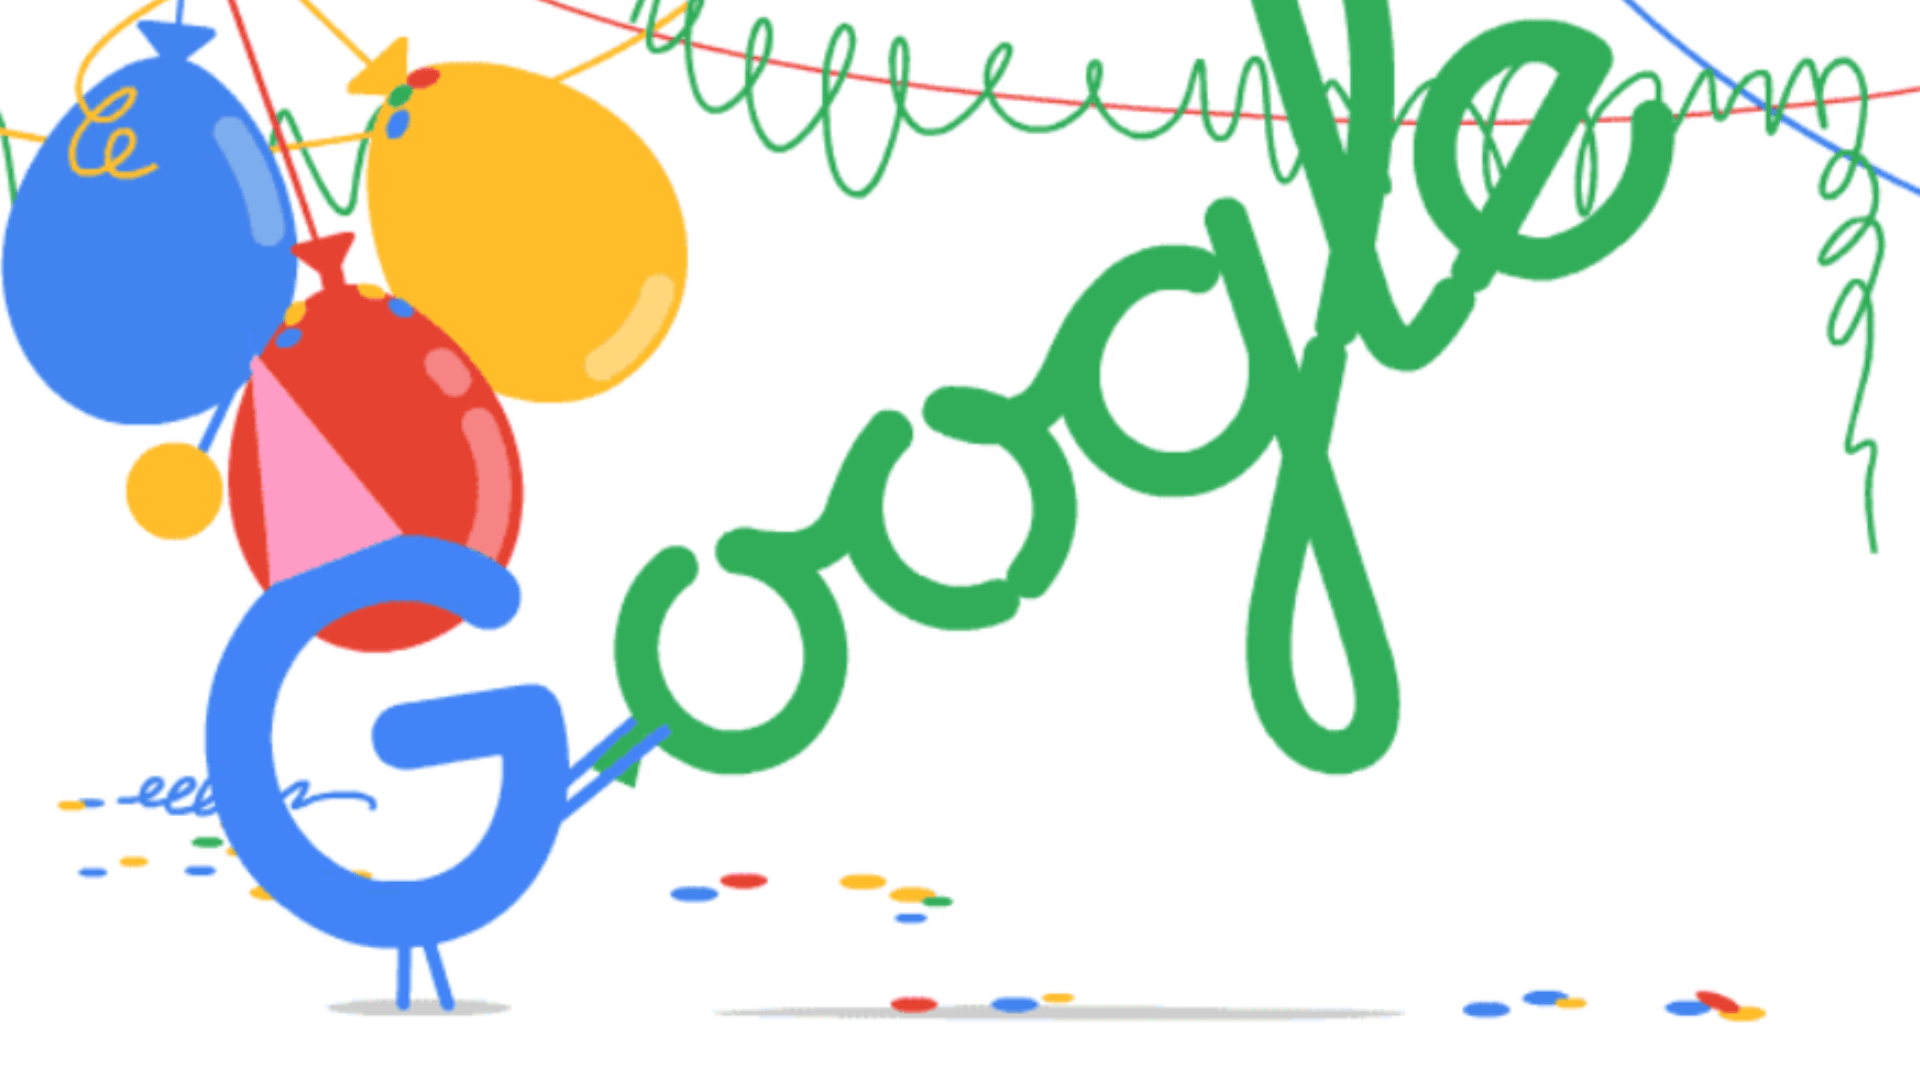 google-18-birthday